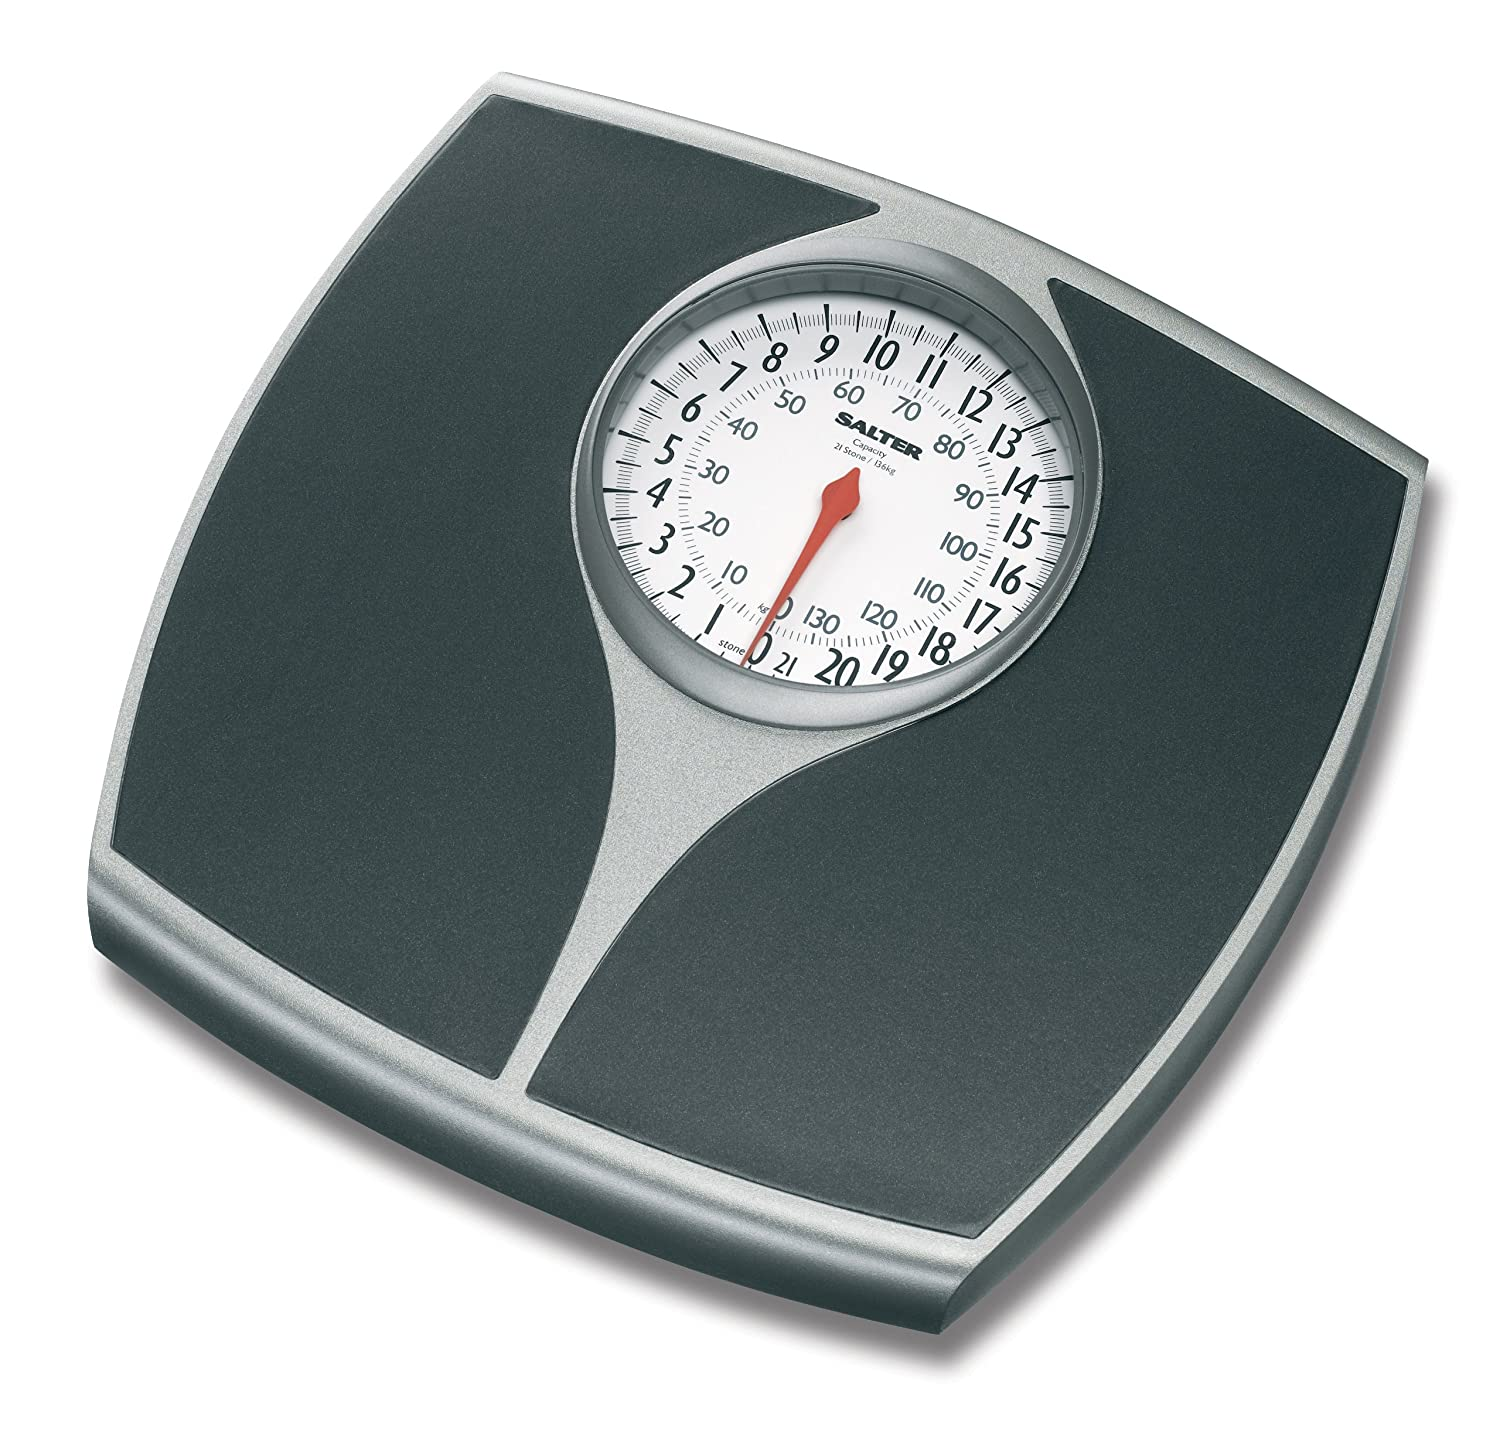 Retro bathroom scales - Salter Speedo Mechanical Bathroom Scales Fast Accurate And Reliable Weighing Easy To Read Analogue Dial Sturdy Metal Platform High Capacity Kg St And